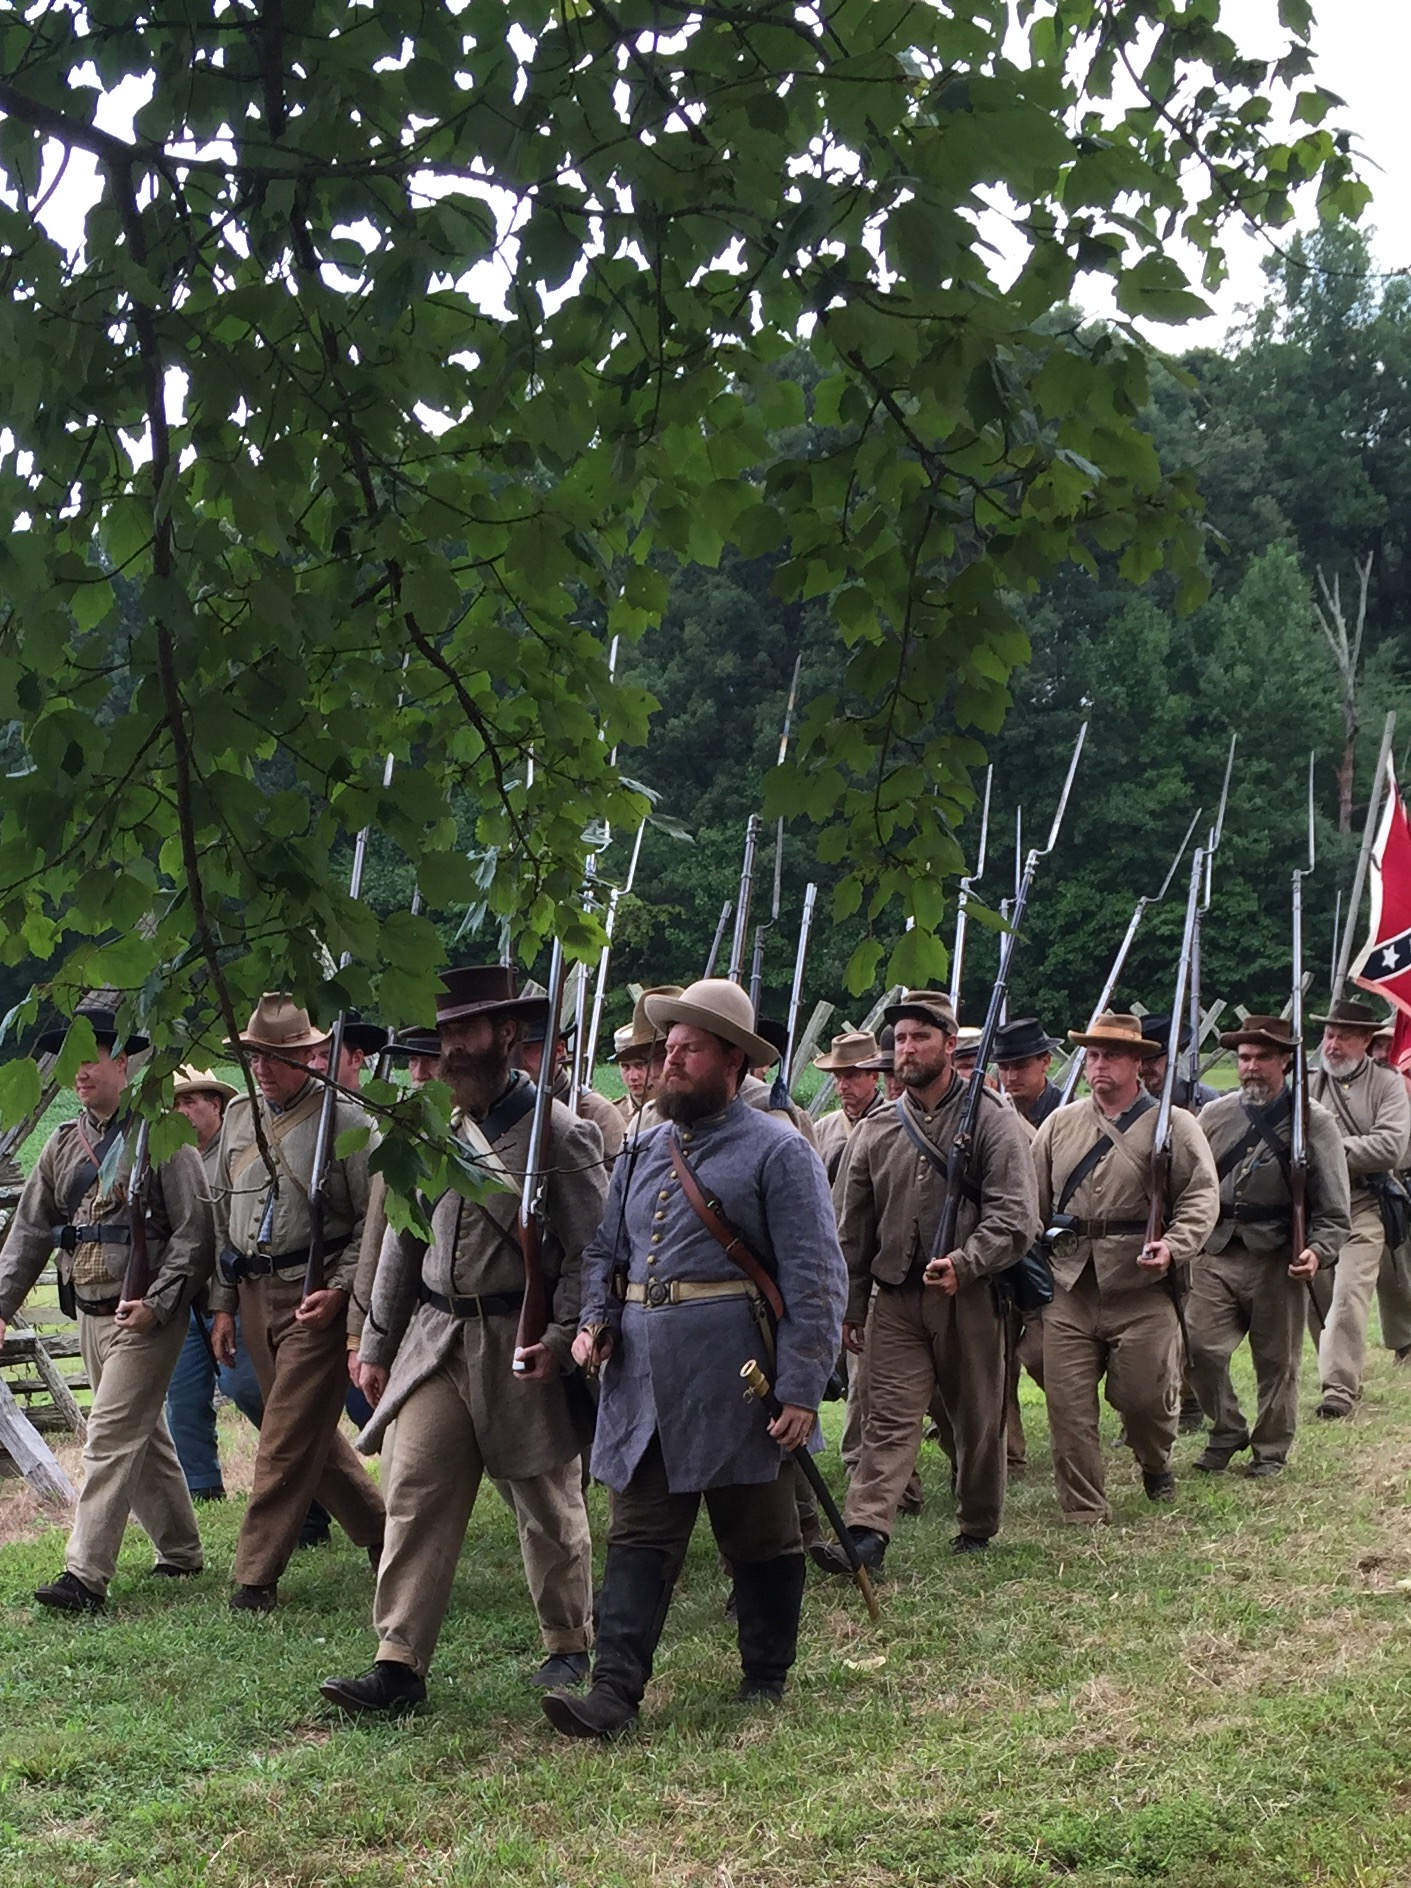 155th-Anniversary-of-the-Battle-of-Cedar-Mountain-7c-2017-Living-History-Weekend